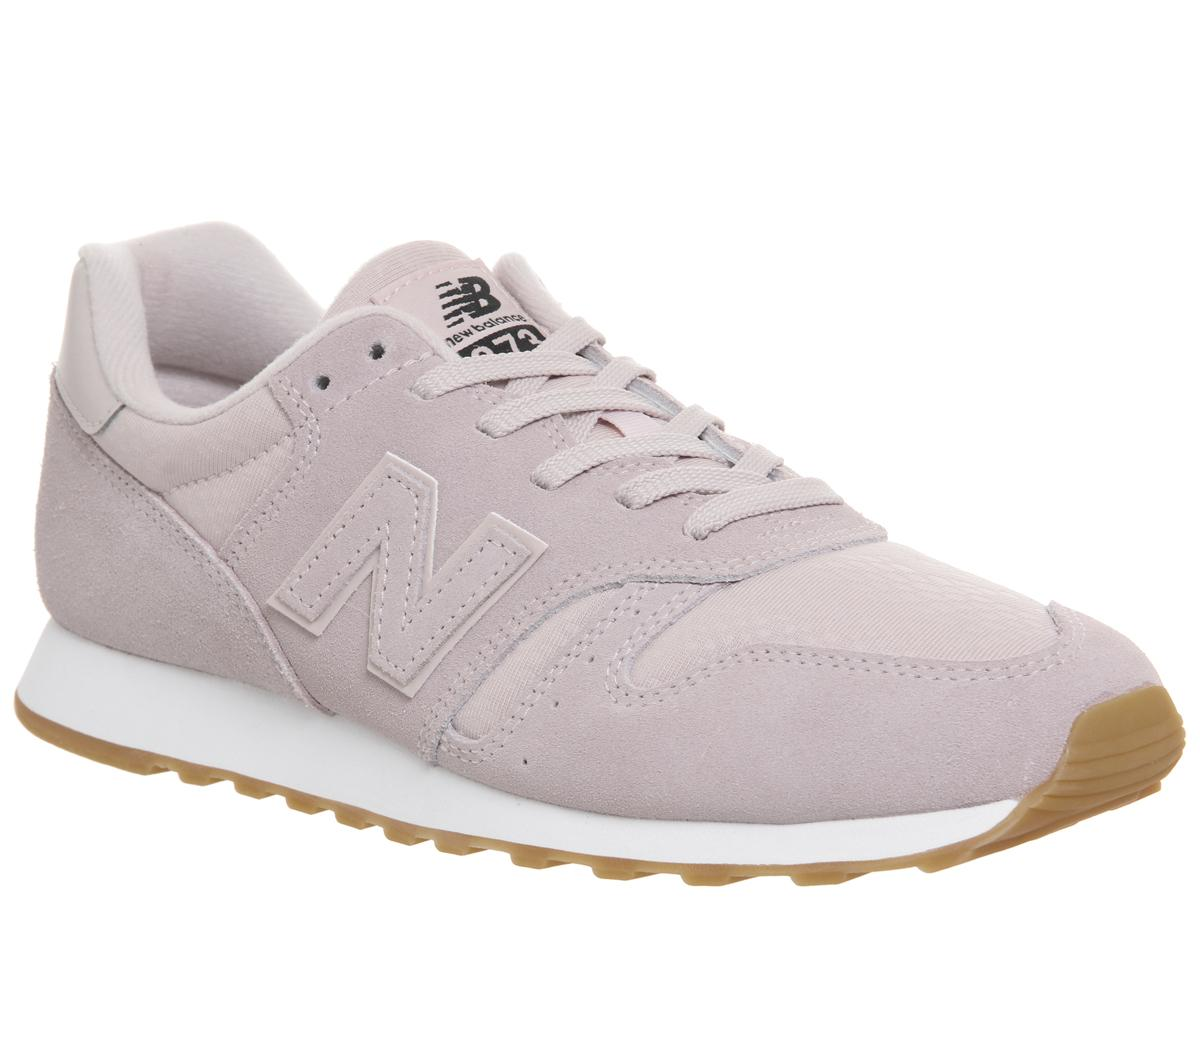 Parity > ladies new balance 373 trainers, Up to 65% OFF